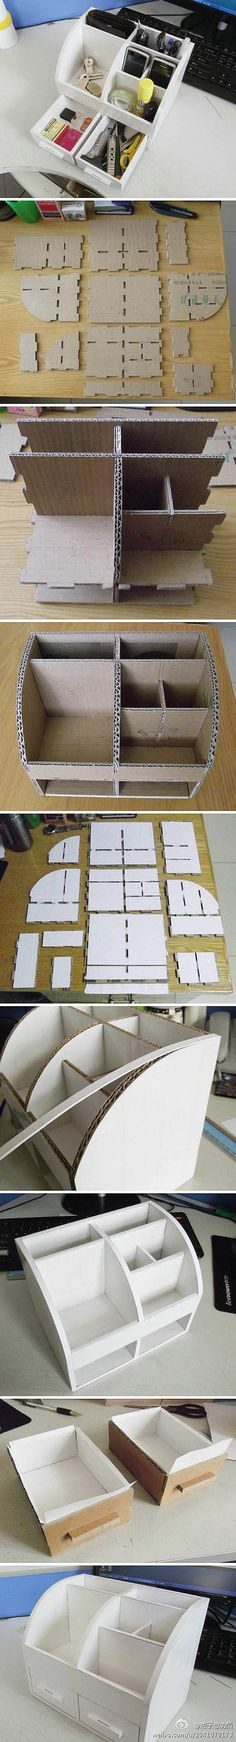 DIY cardboard desk organizer, so clever! If I'll ever decide to make it, I'll repurpose it to be a makeup stuff organizer